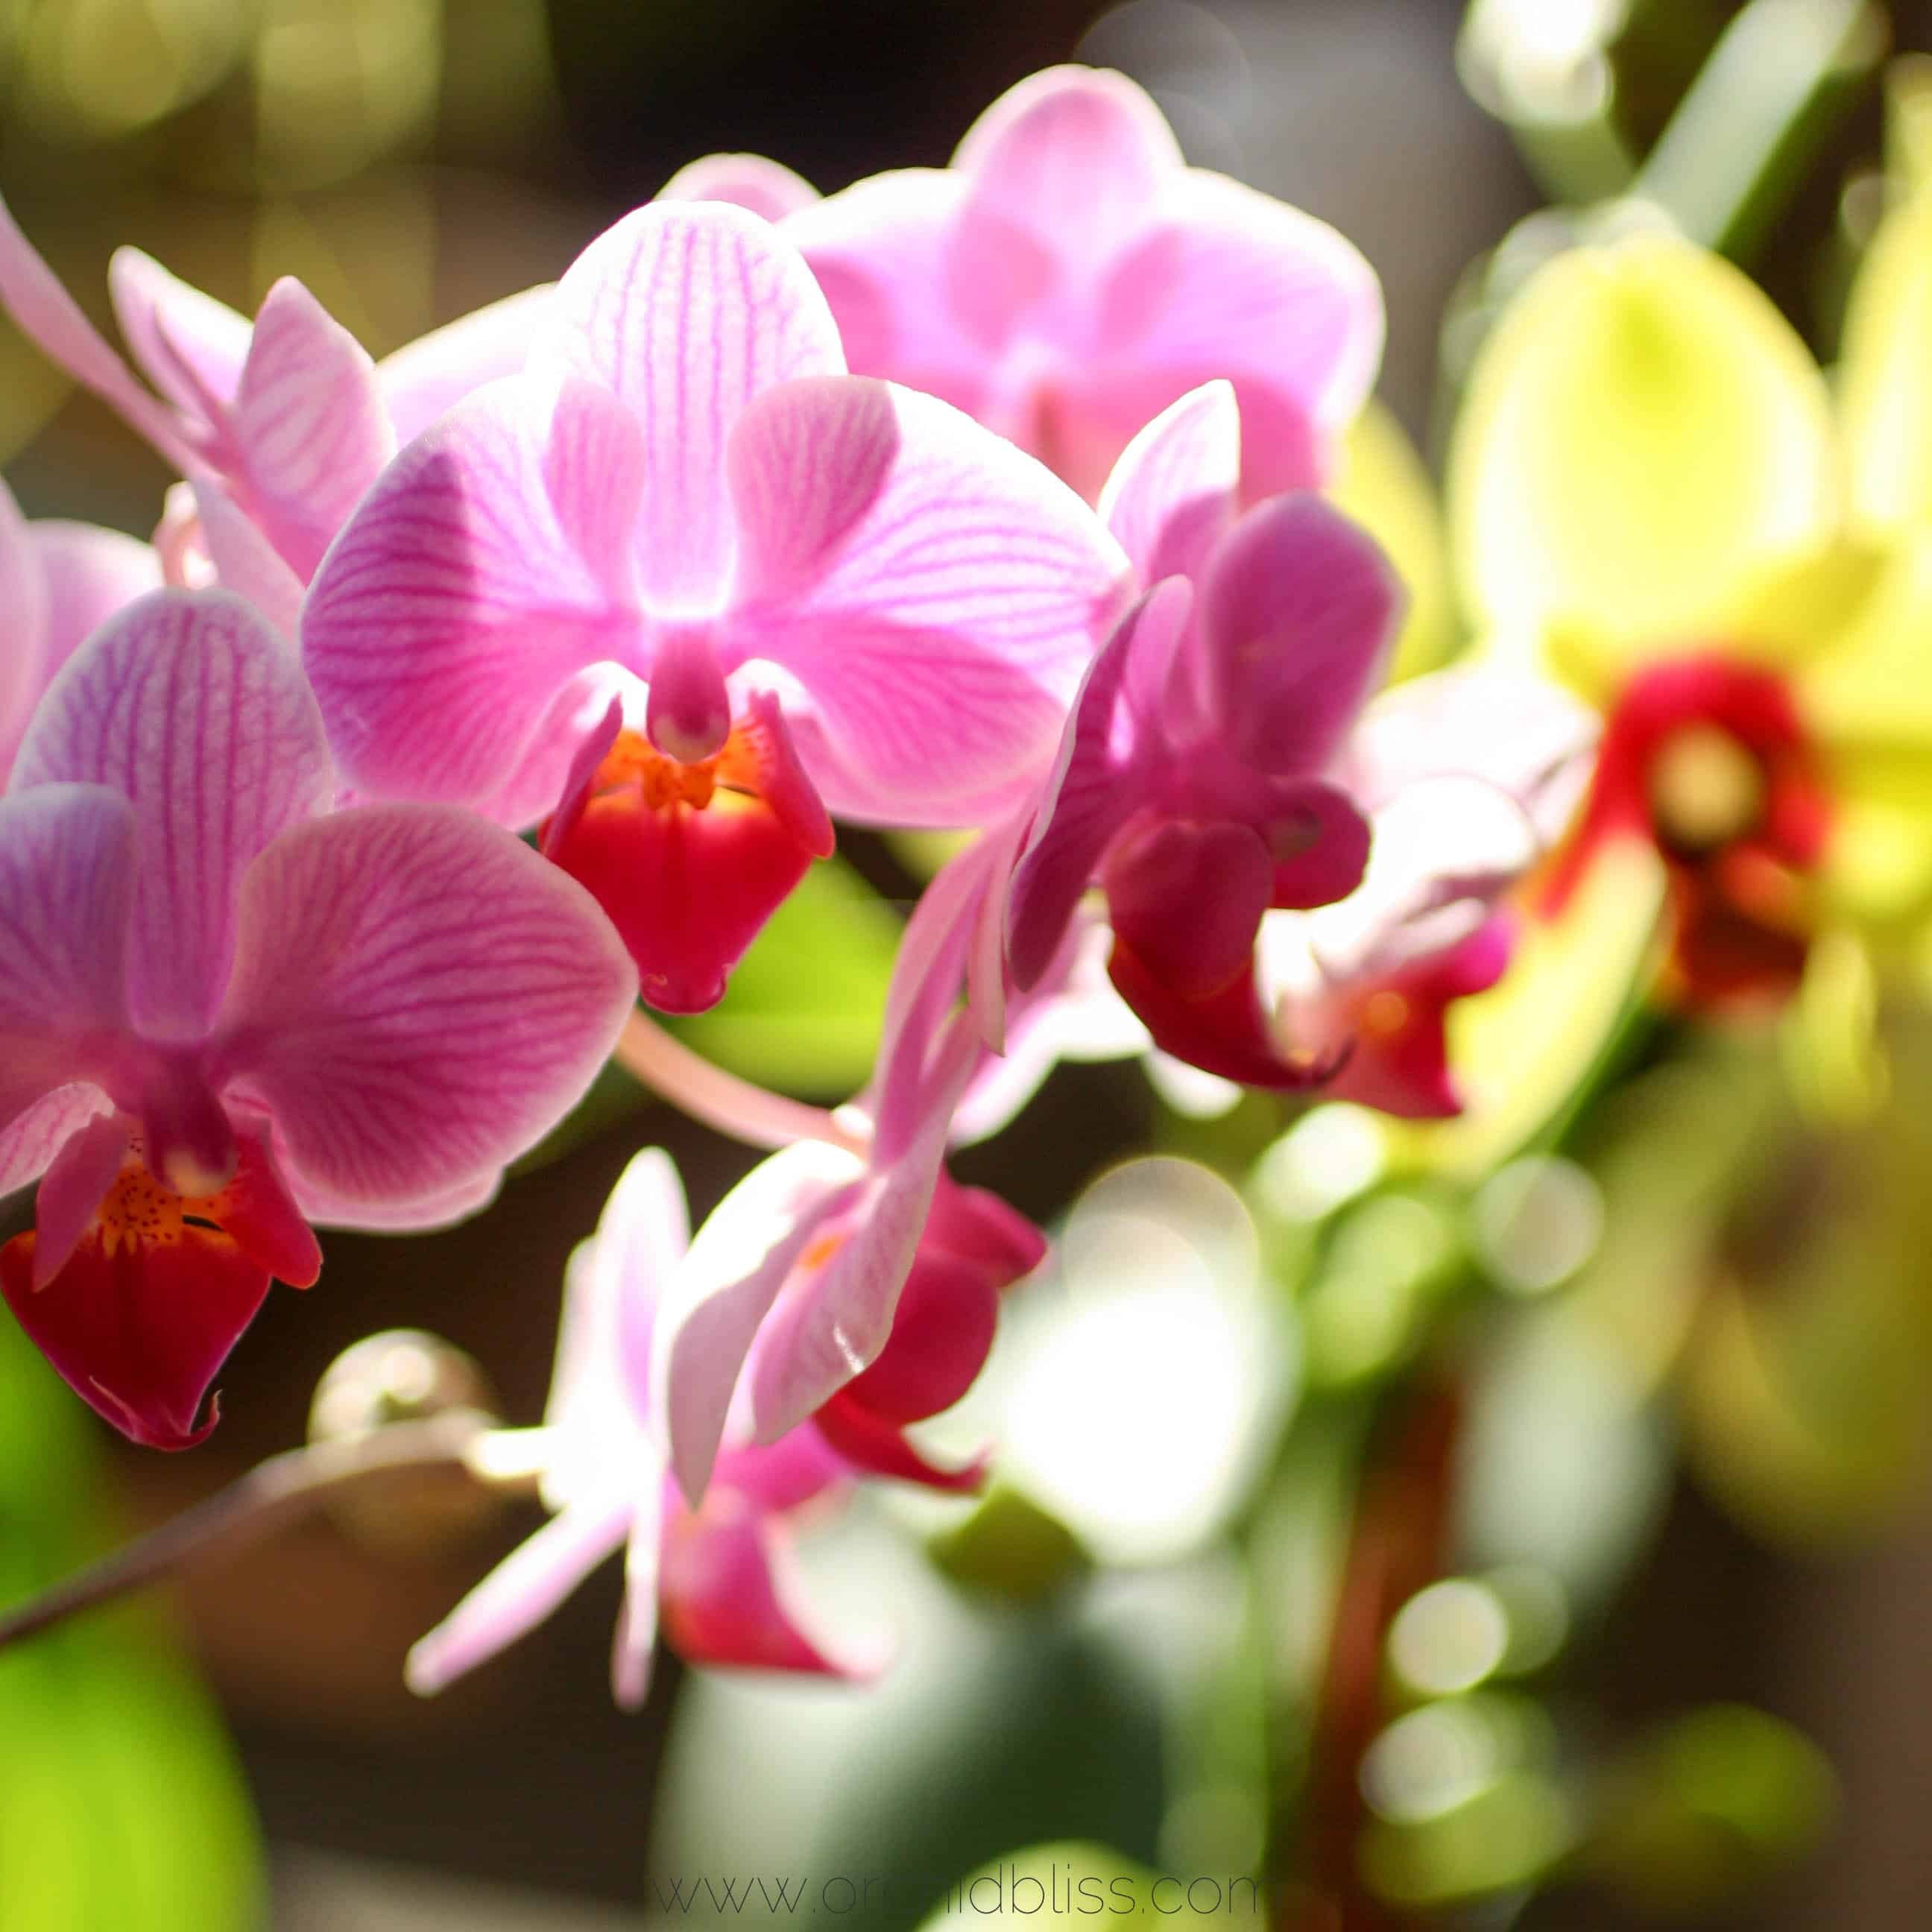 use best potting media - orchid soil